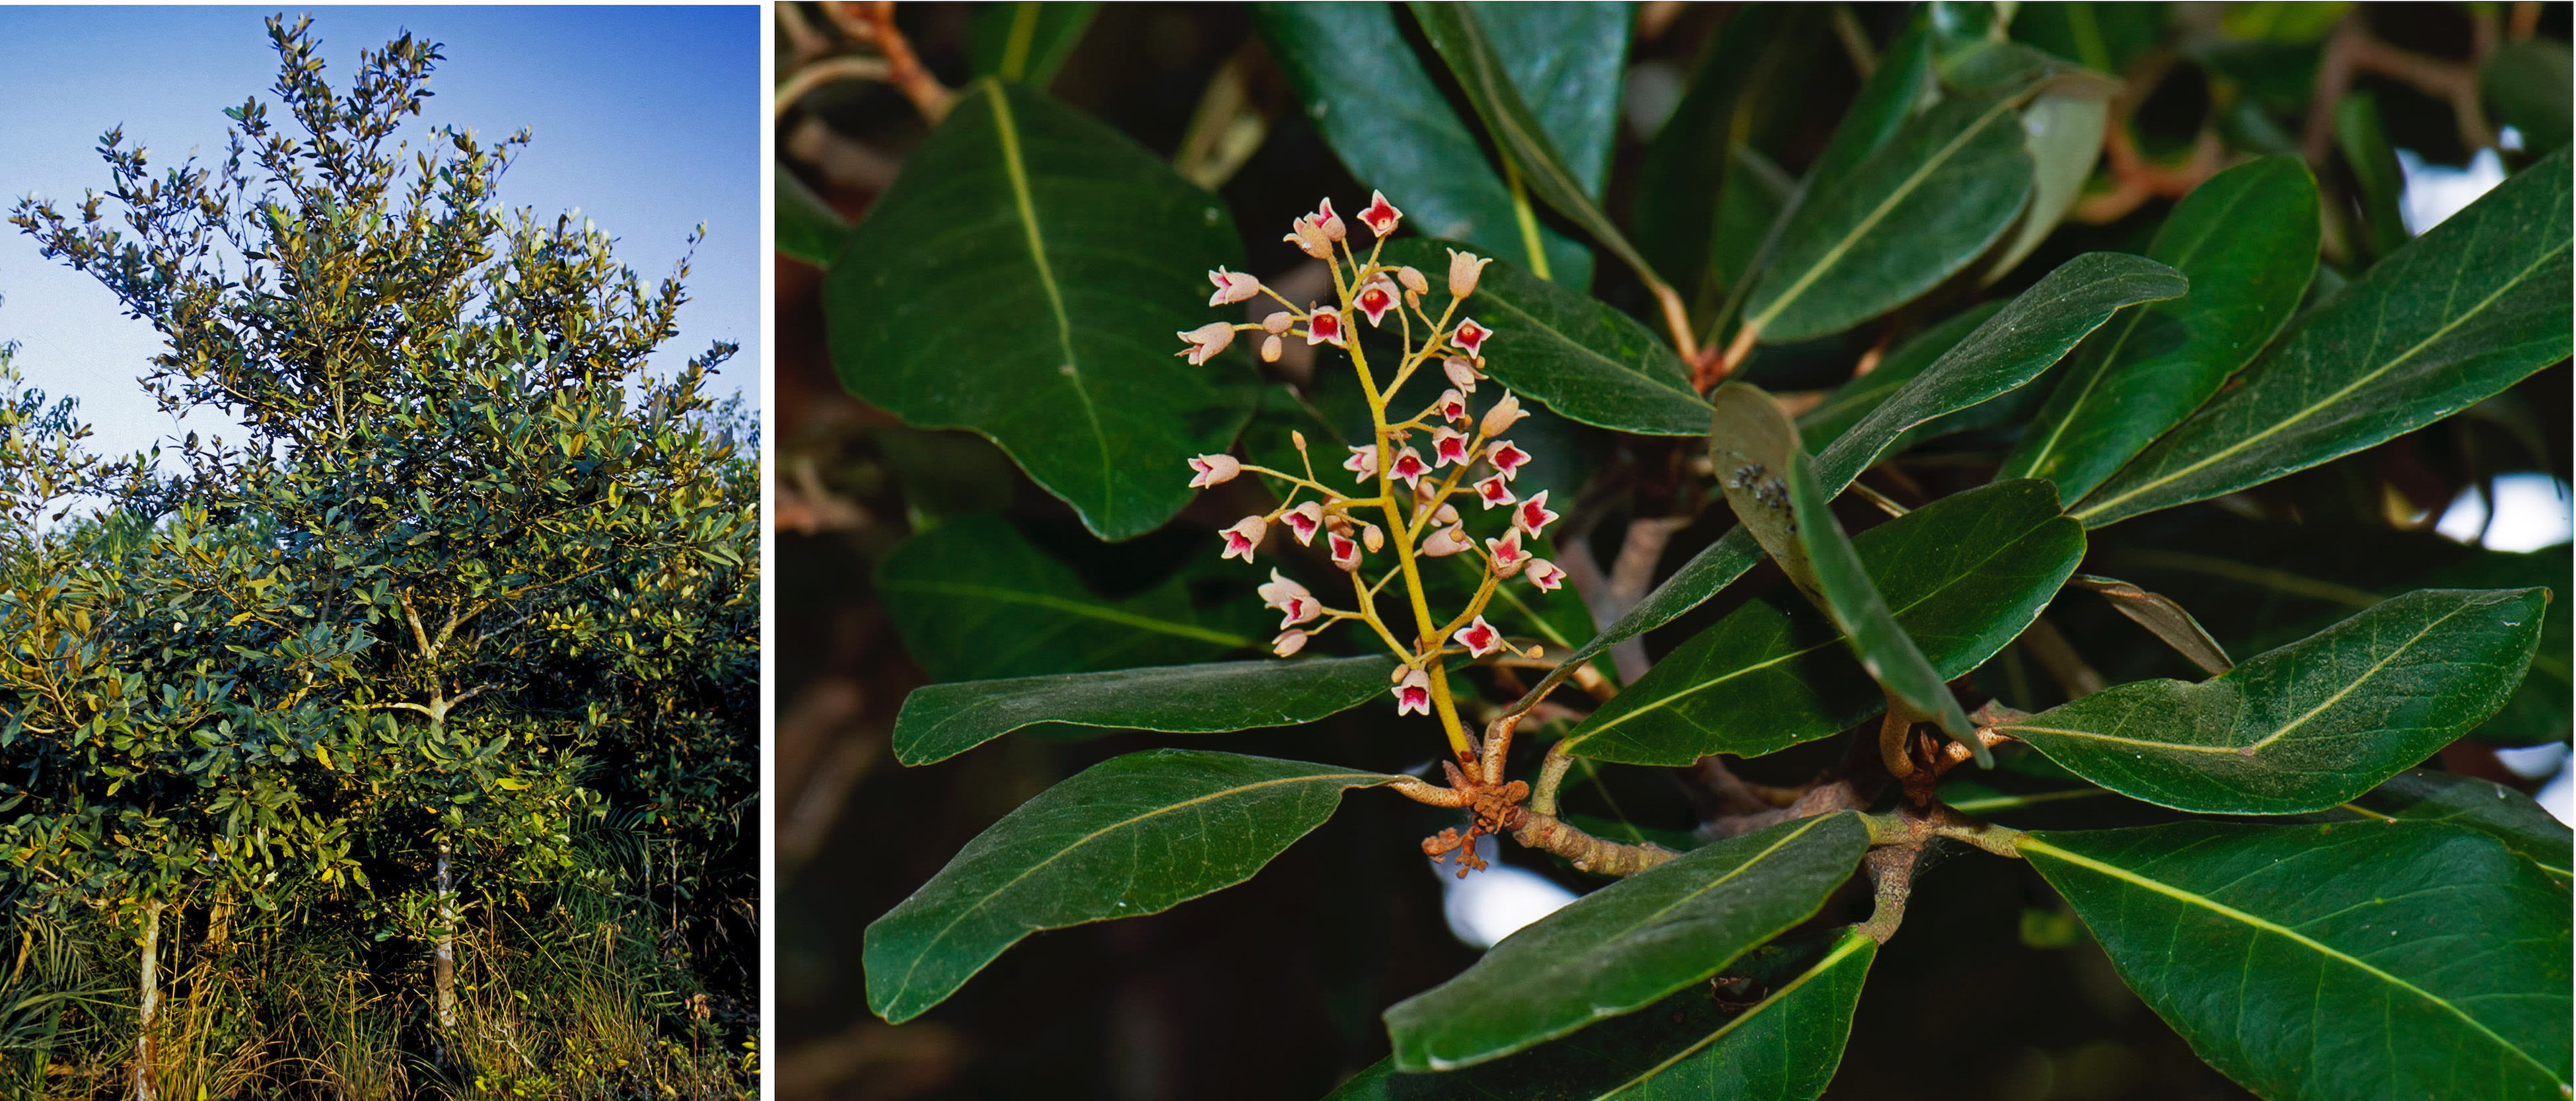 Sundari trees are adapted to thrive in areas with a specific salinity. The tree (left) can grow up to a height of 25 m, has elliptic leaves, and flowers which bloom in March-April (right). Photos: Dhritiman Mukherjee